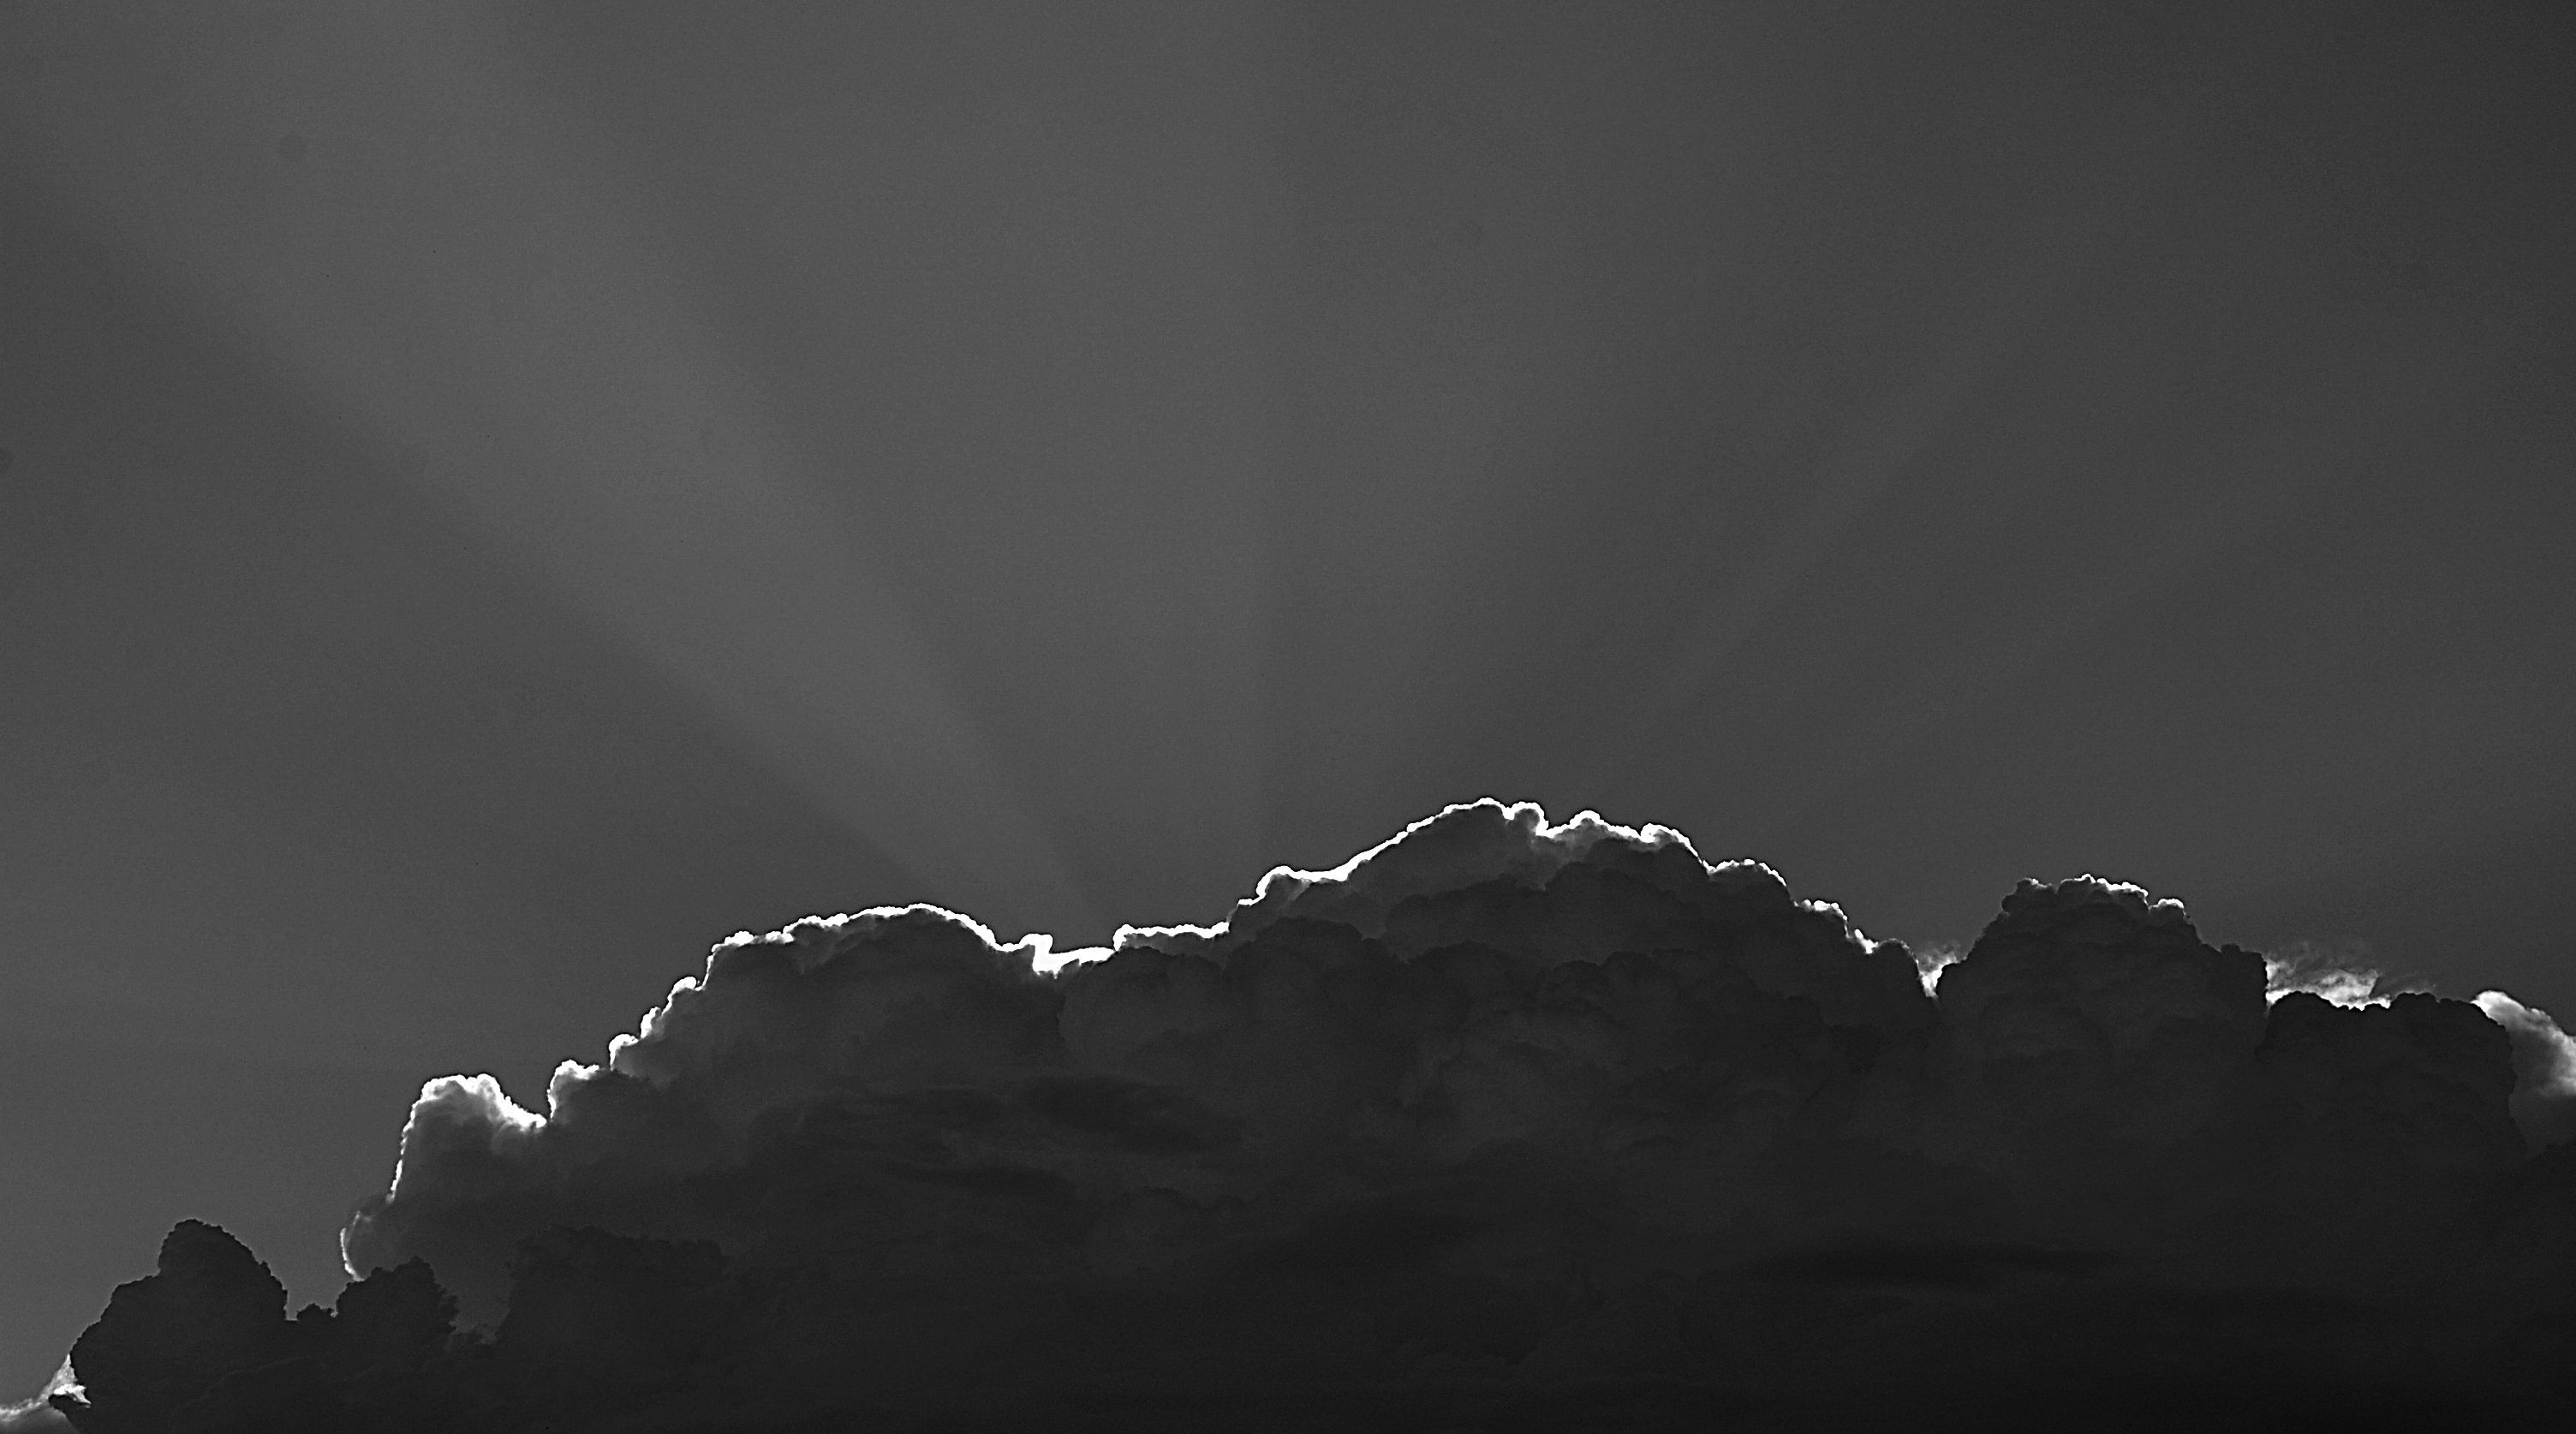 Iphone 5 Hd Wallpaper Nature Free Stock Photo Of Black Wallpaper Black And White Clouds